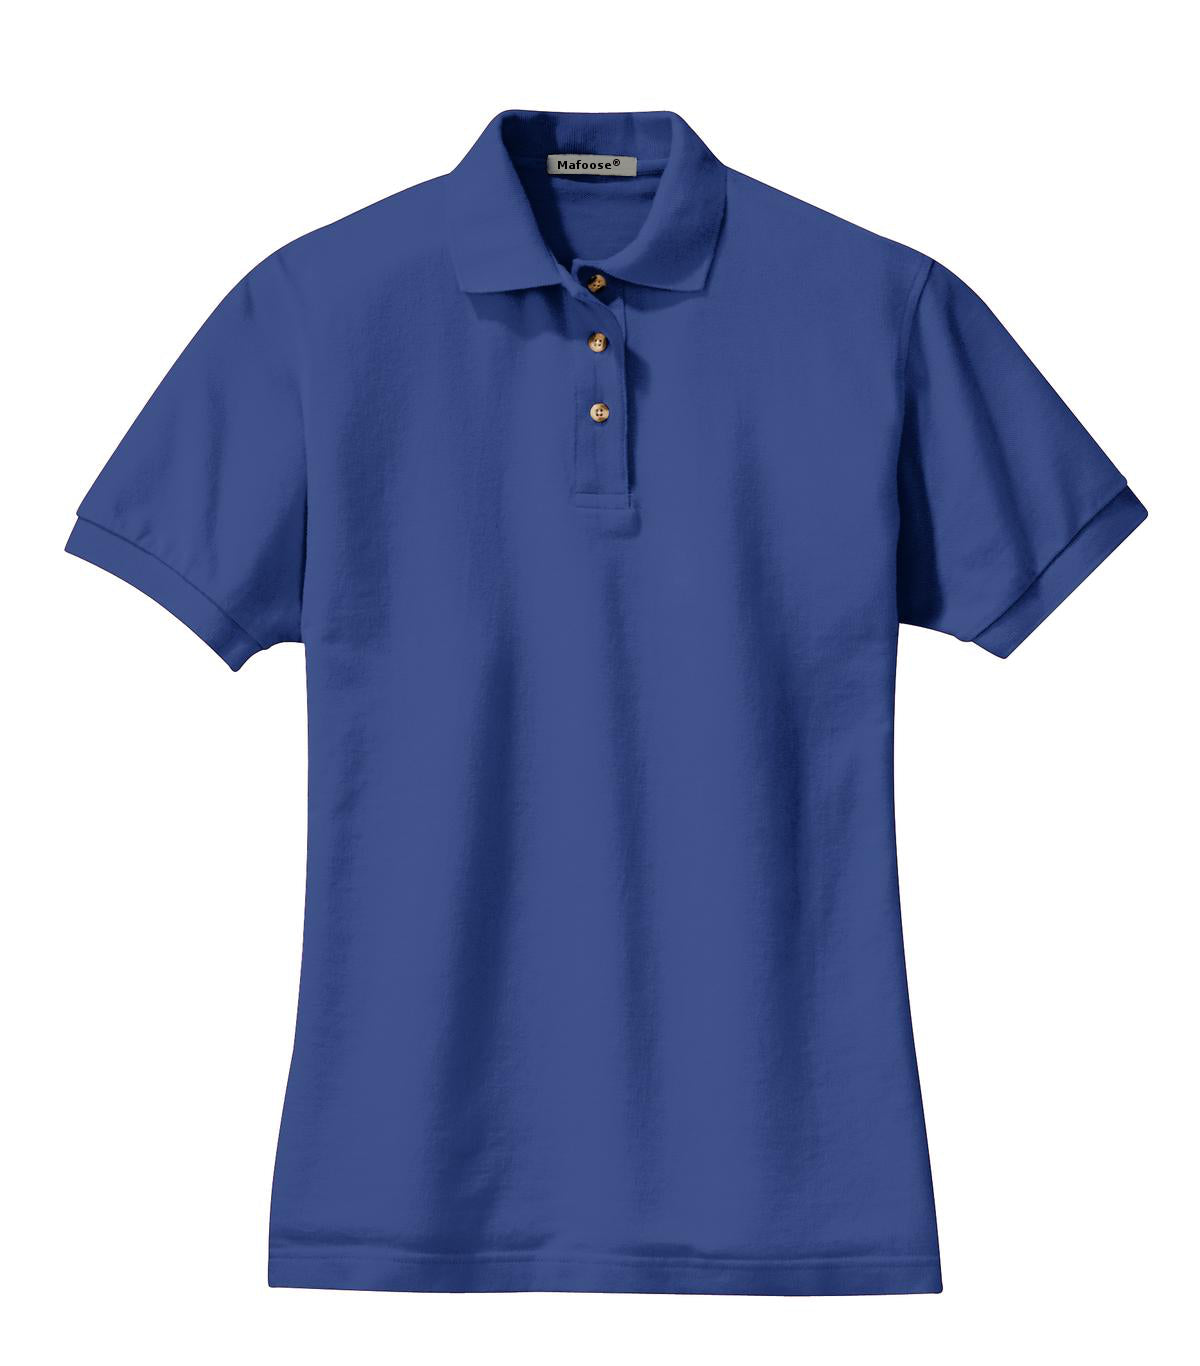 Mafoose Women's Heavyweight Cotton Pique Polo Shirt Royal-Front